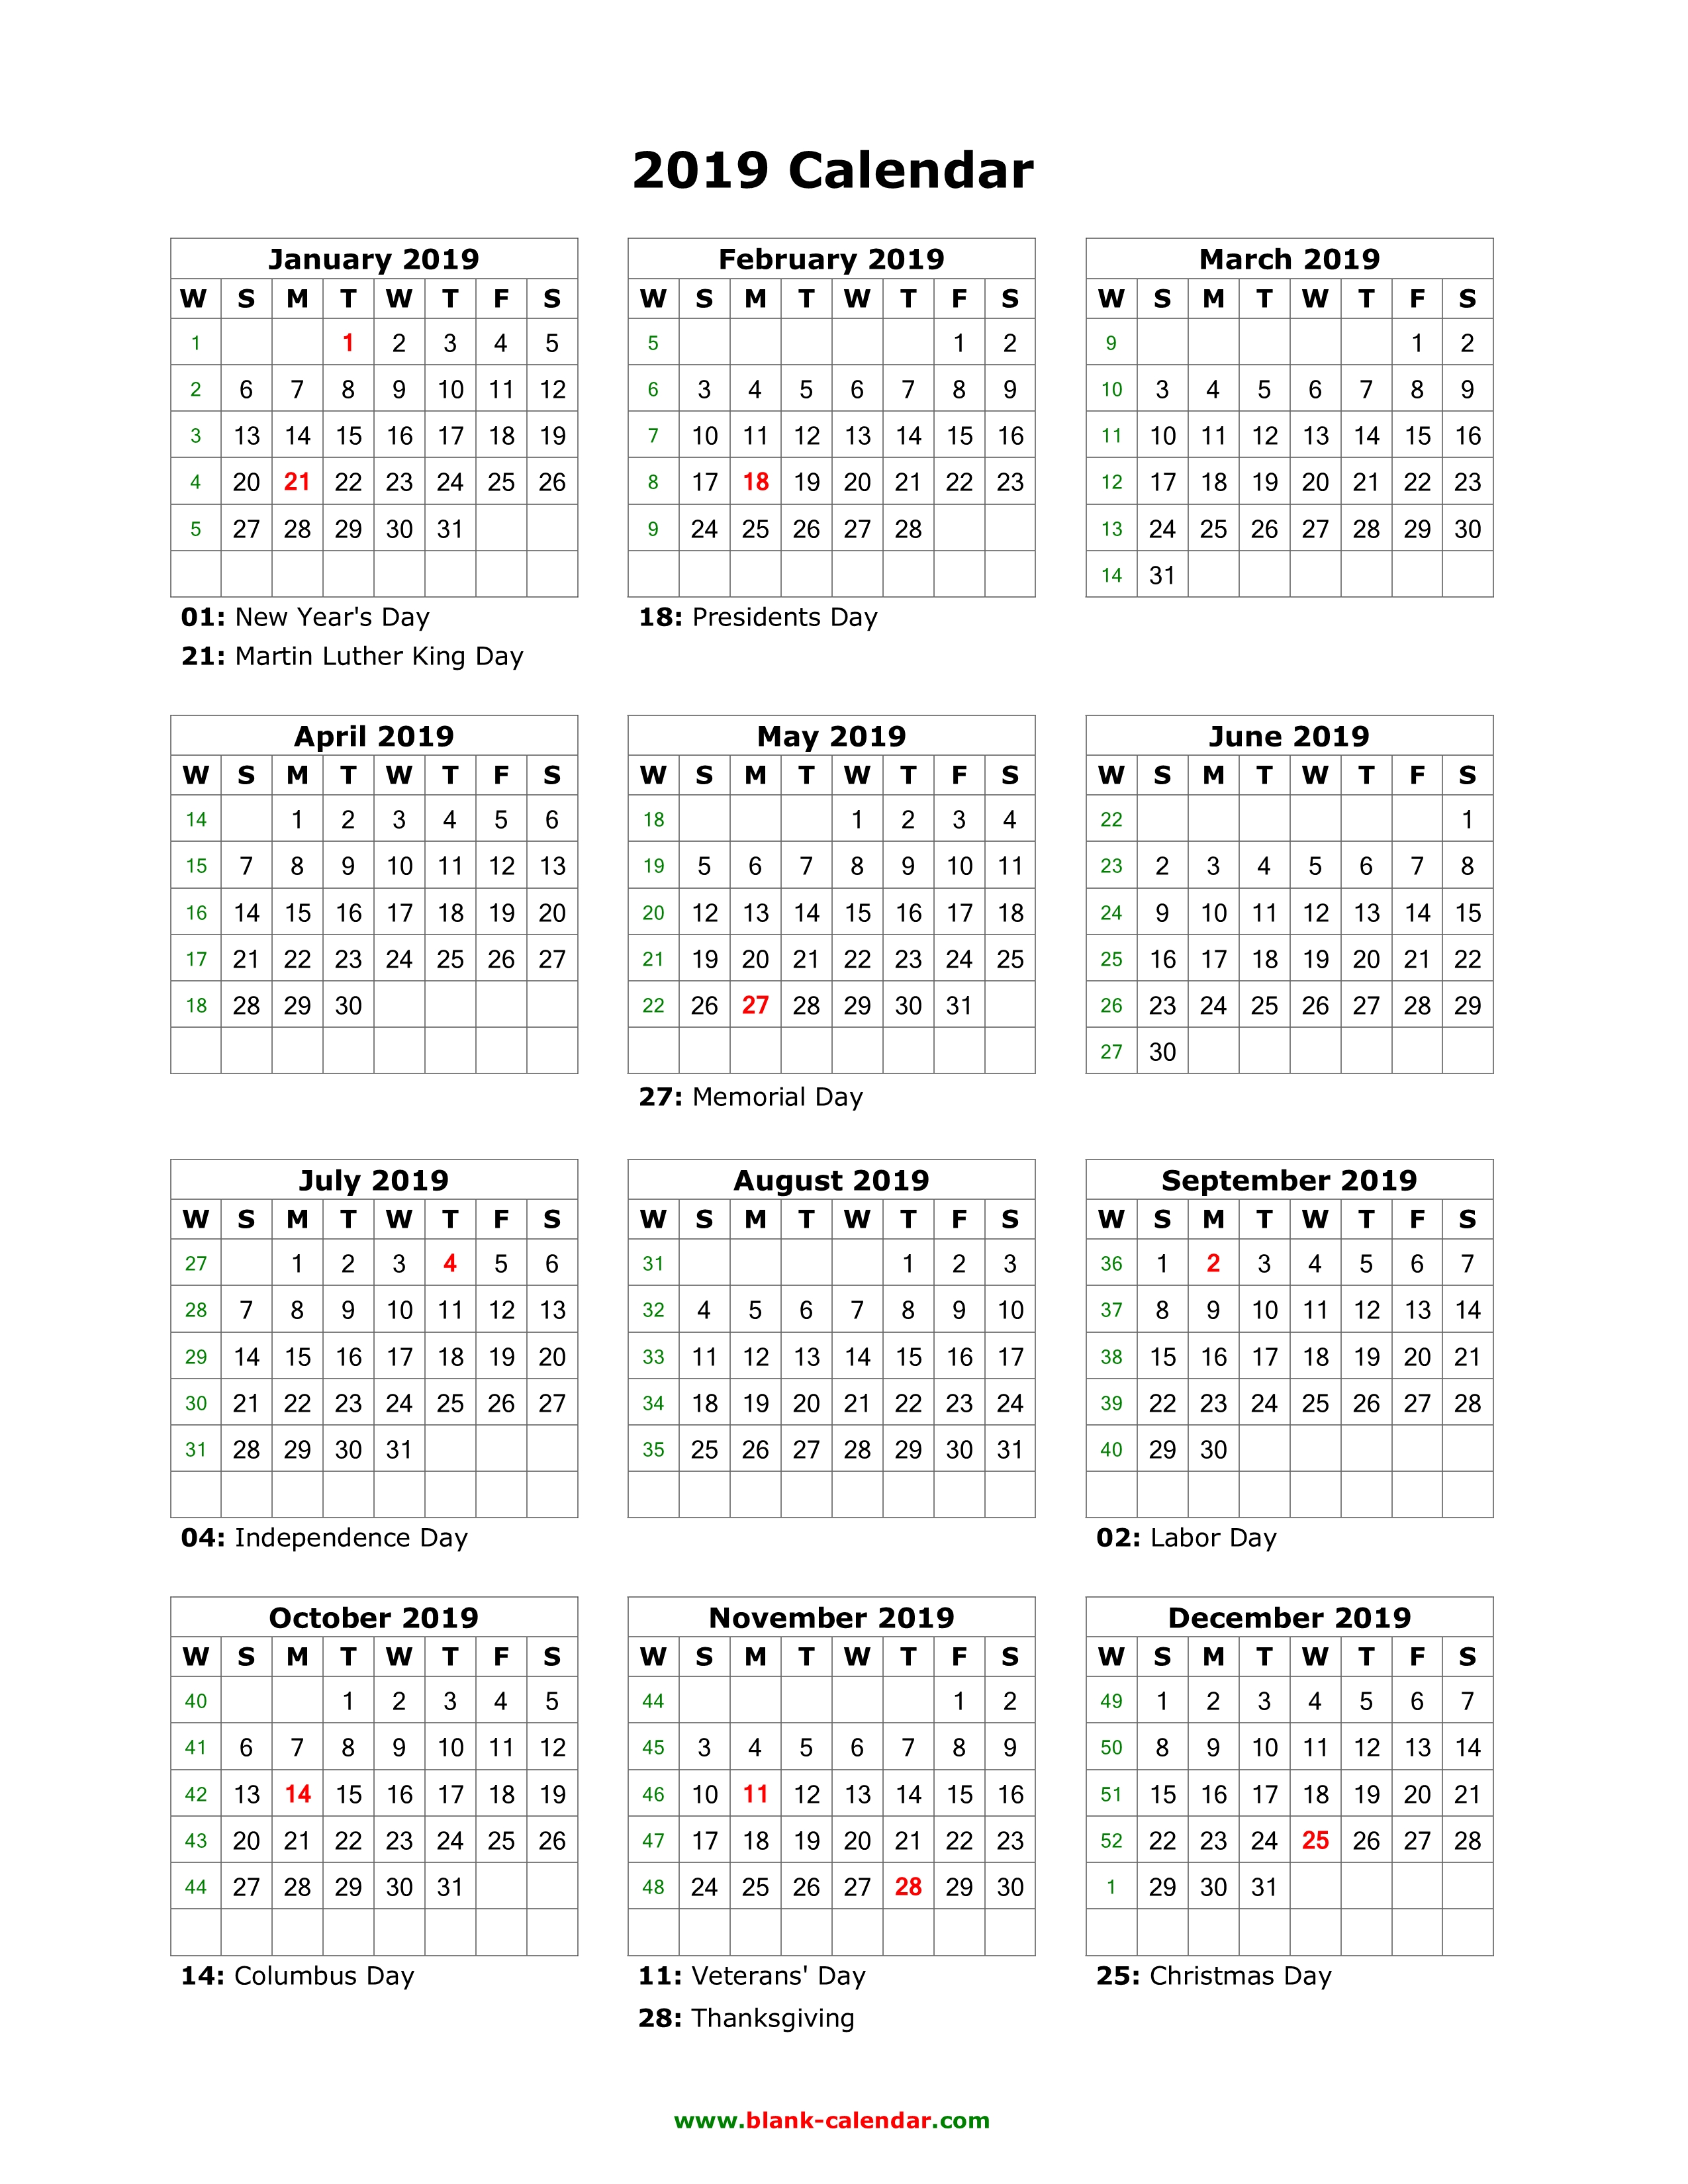 Download Blank Calendar 2019 With Us Holidays 12 Months On One Page